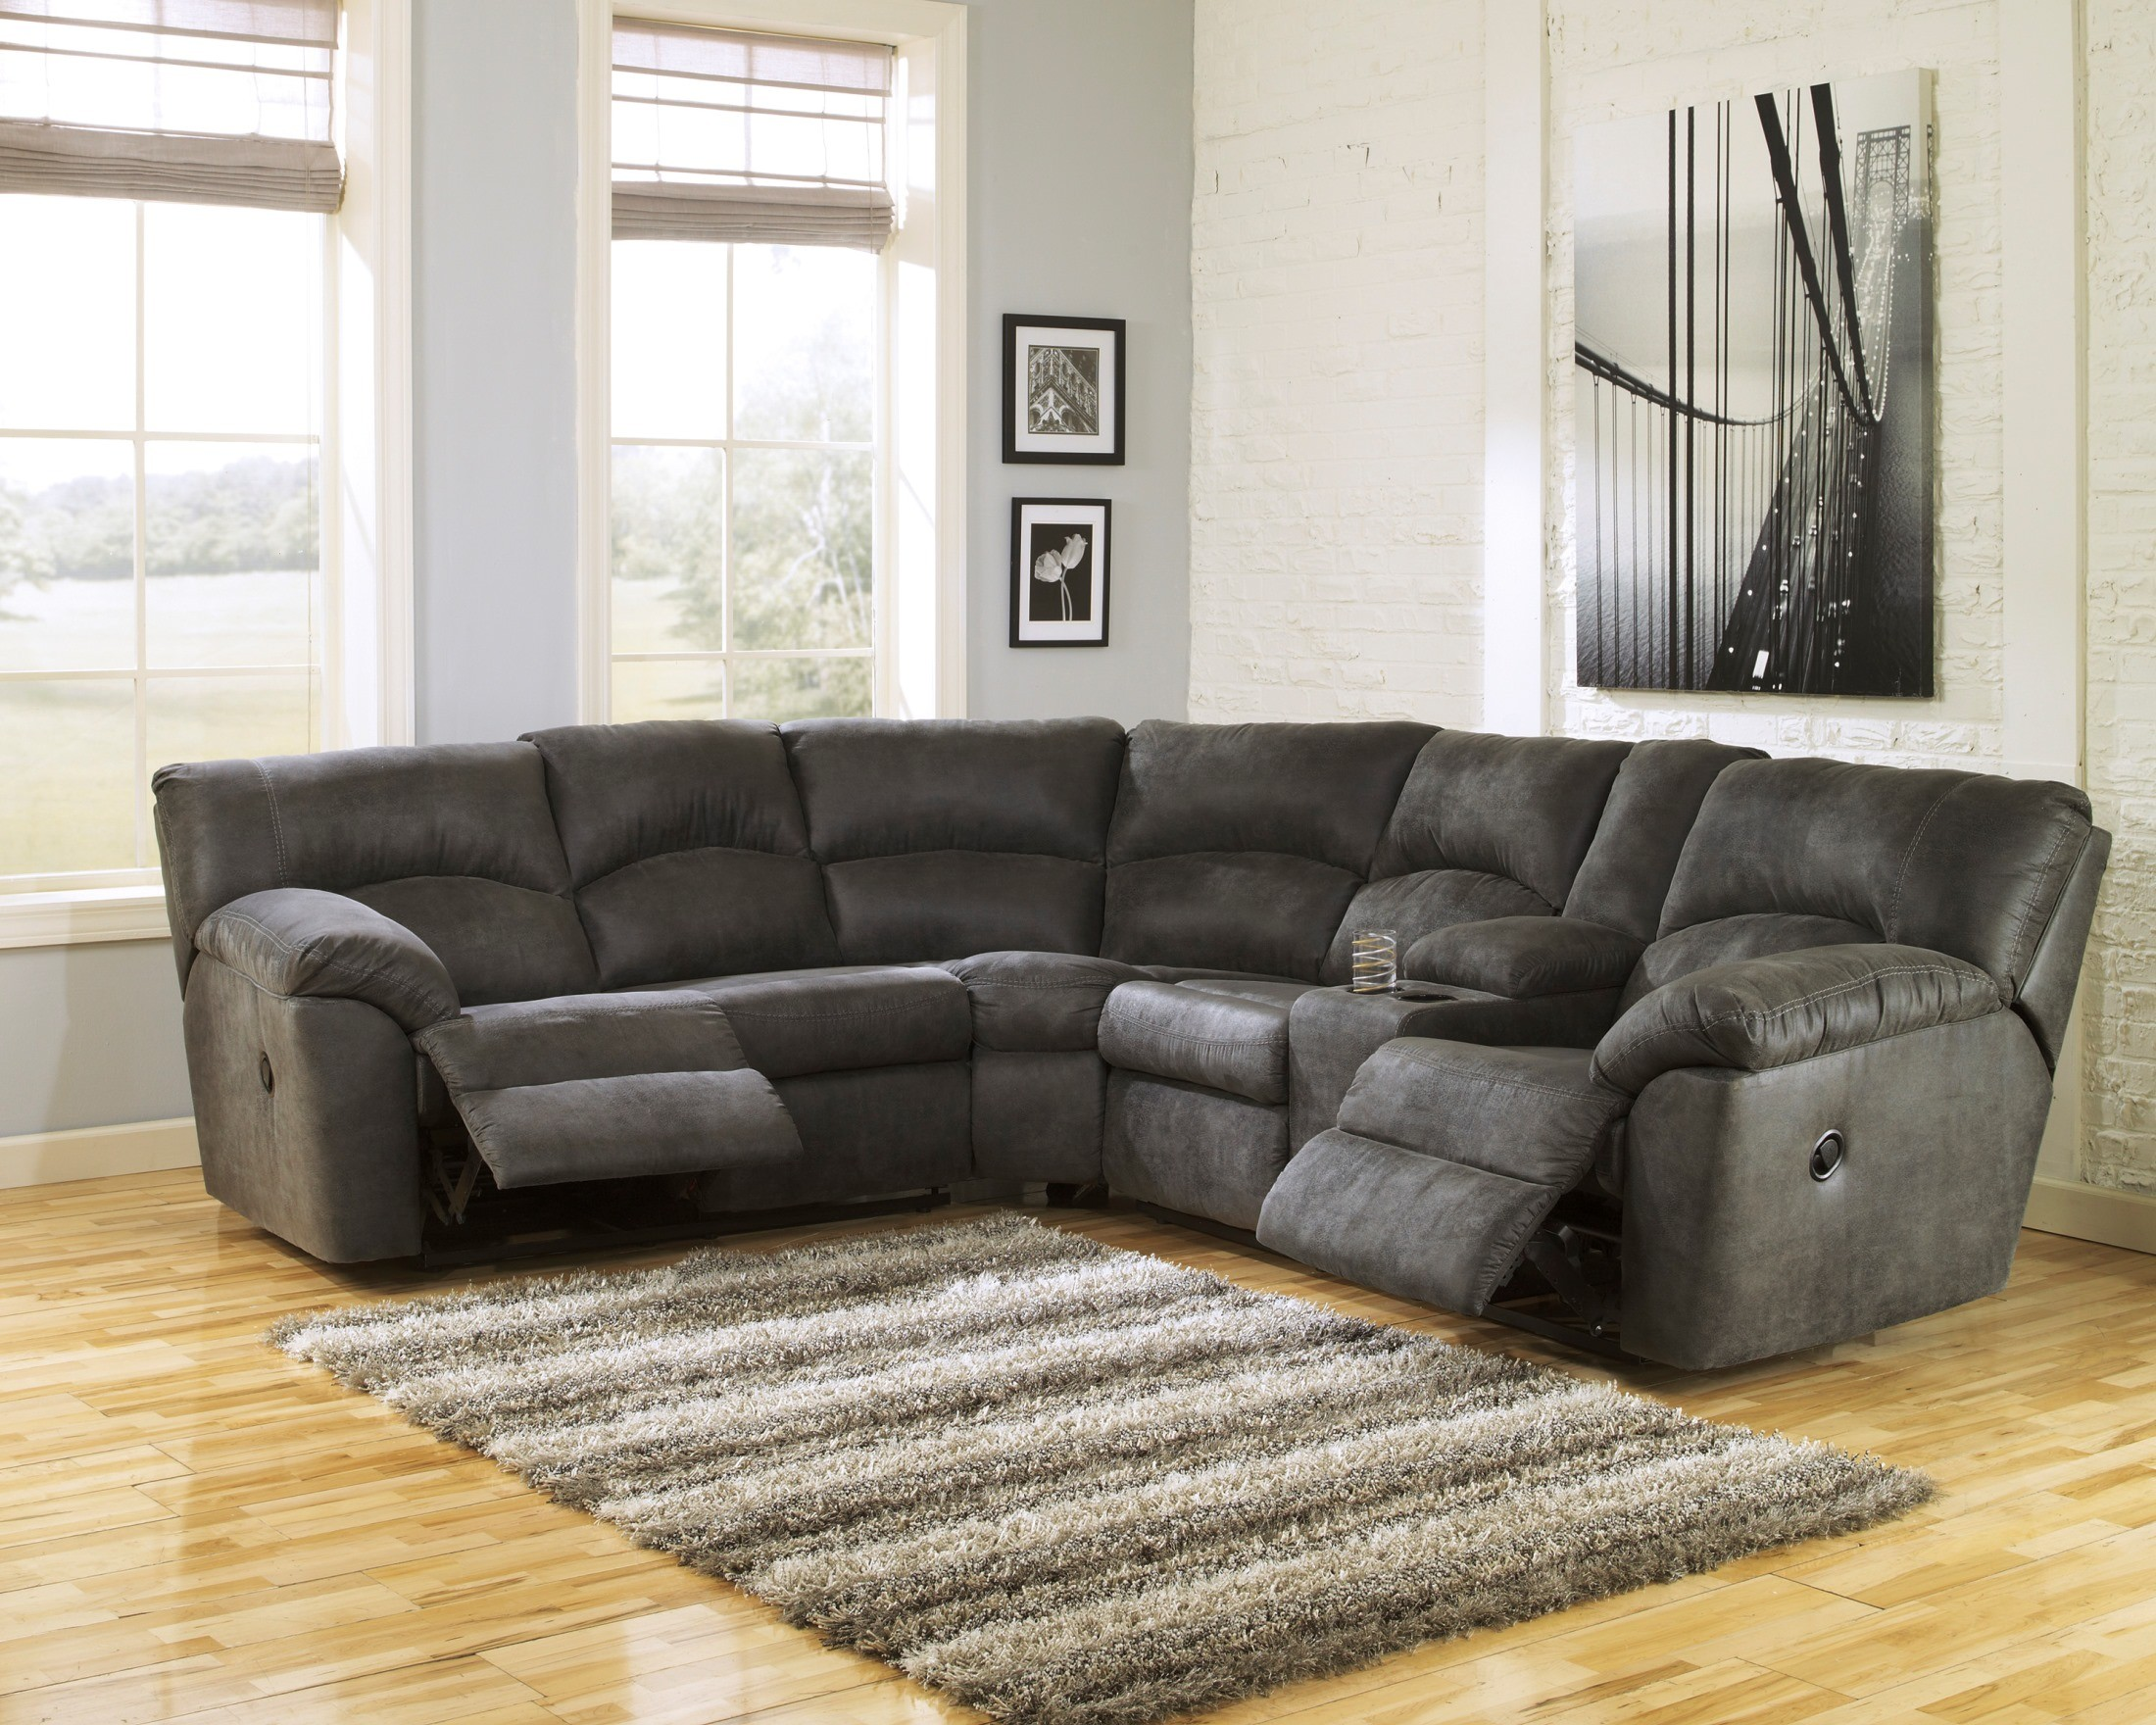 Tambo Pewter Reclining Sectional from Ashley